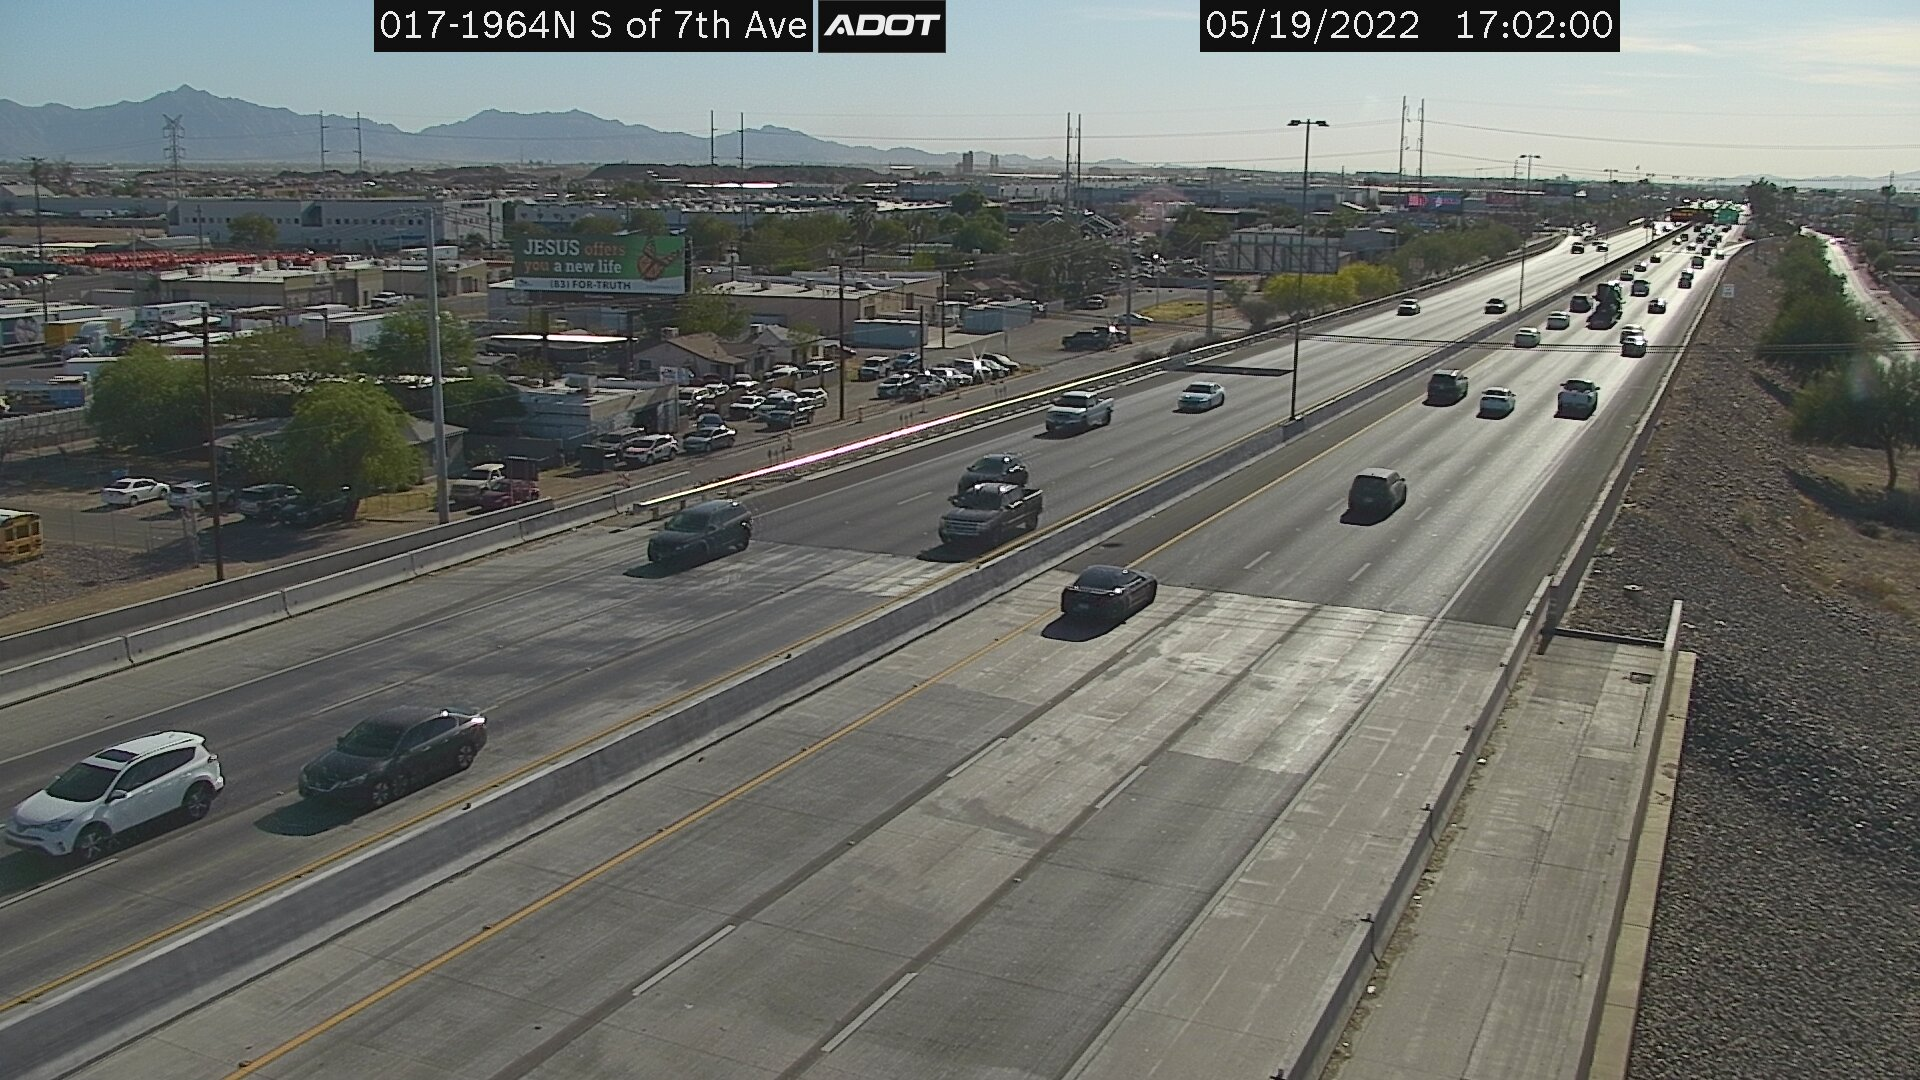 S of 7th Ave SB (I17) (049) - Phoenix and Arizona